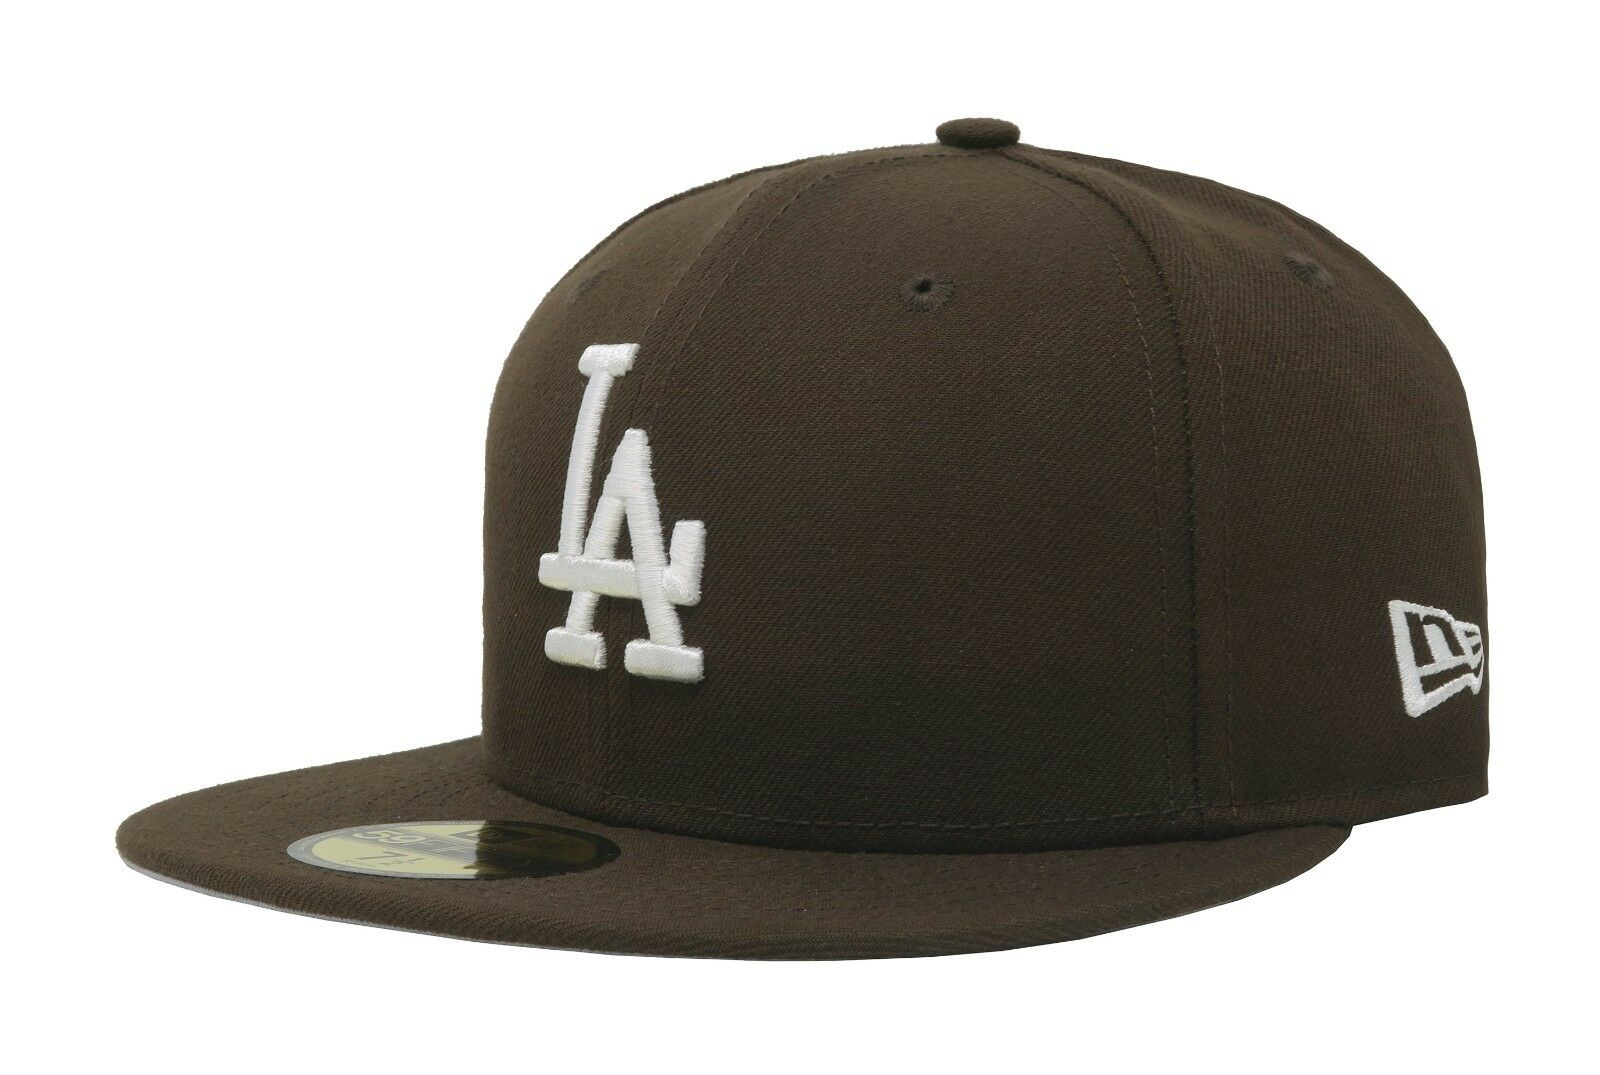 83240a07eed Era 59fifty MLB Baseball Cap Los Angeles Dodgers Walnut Brown Fitted ...